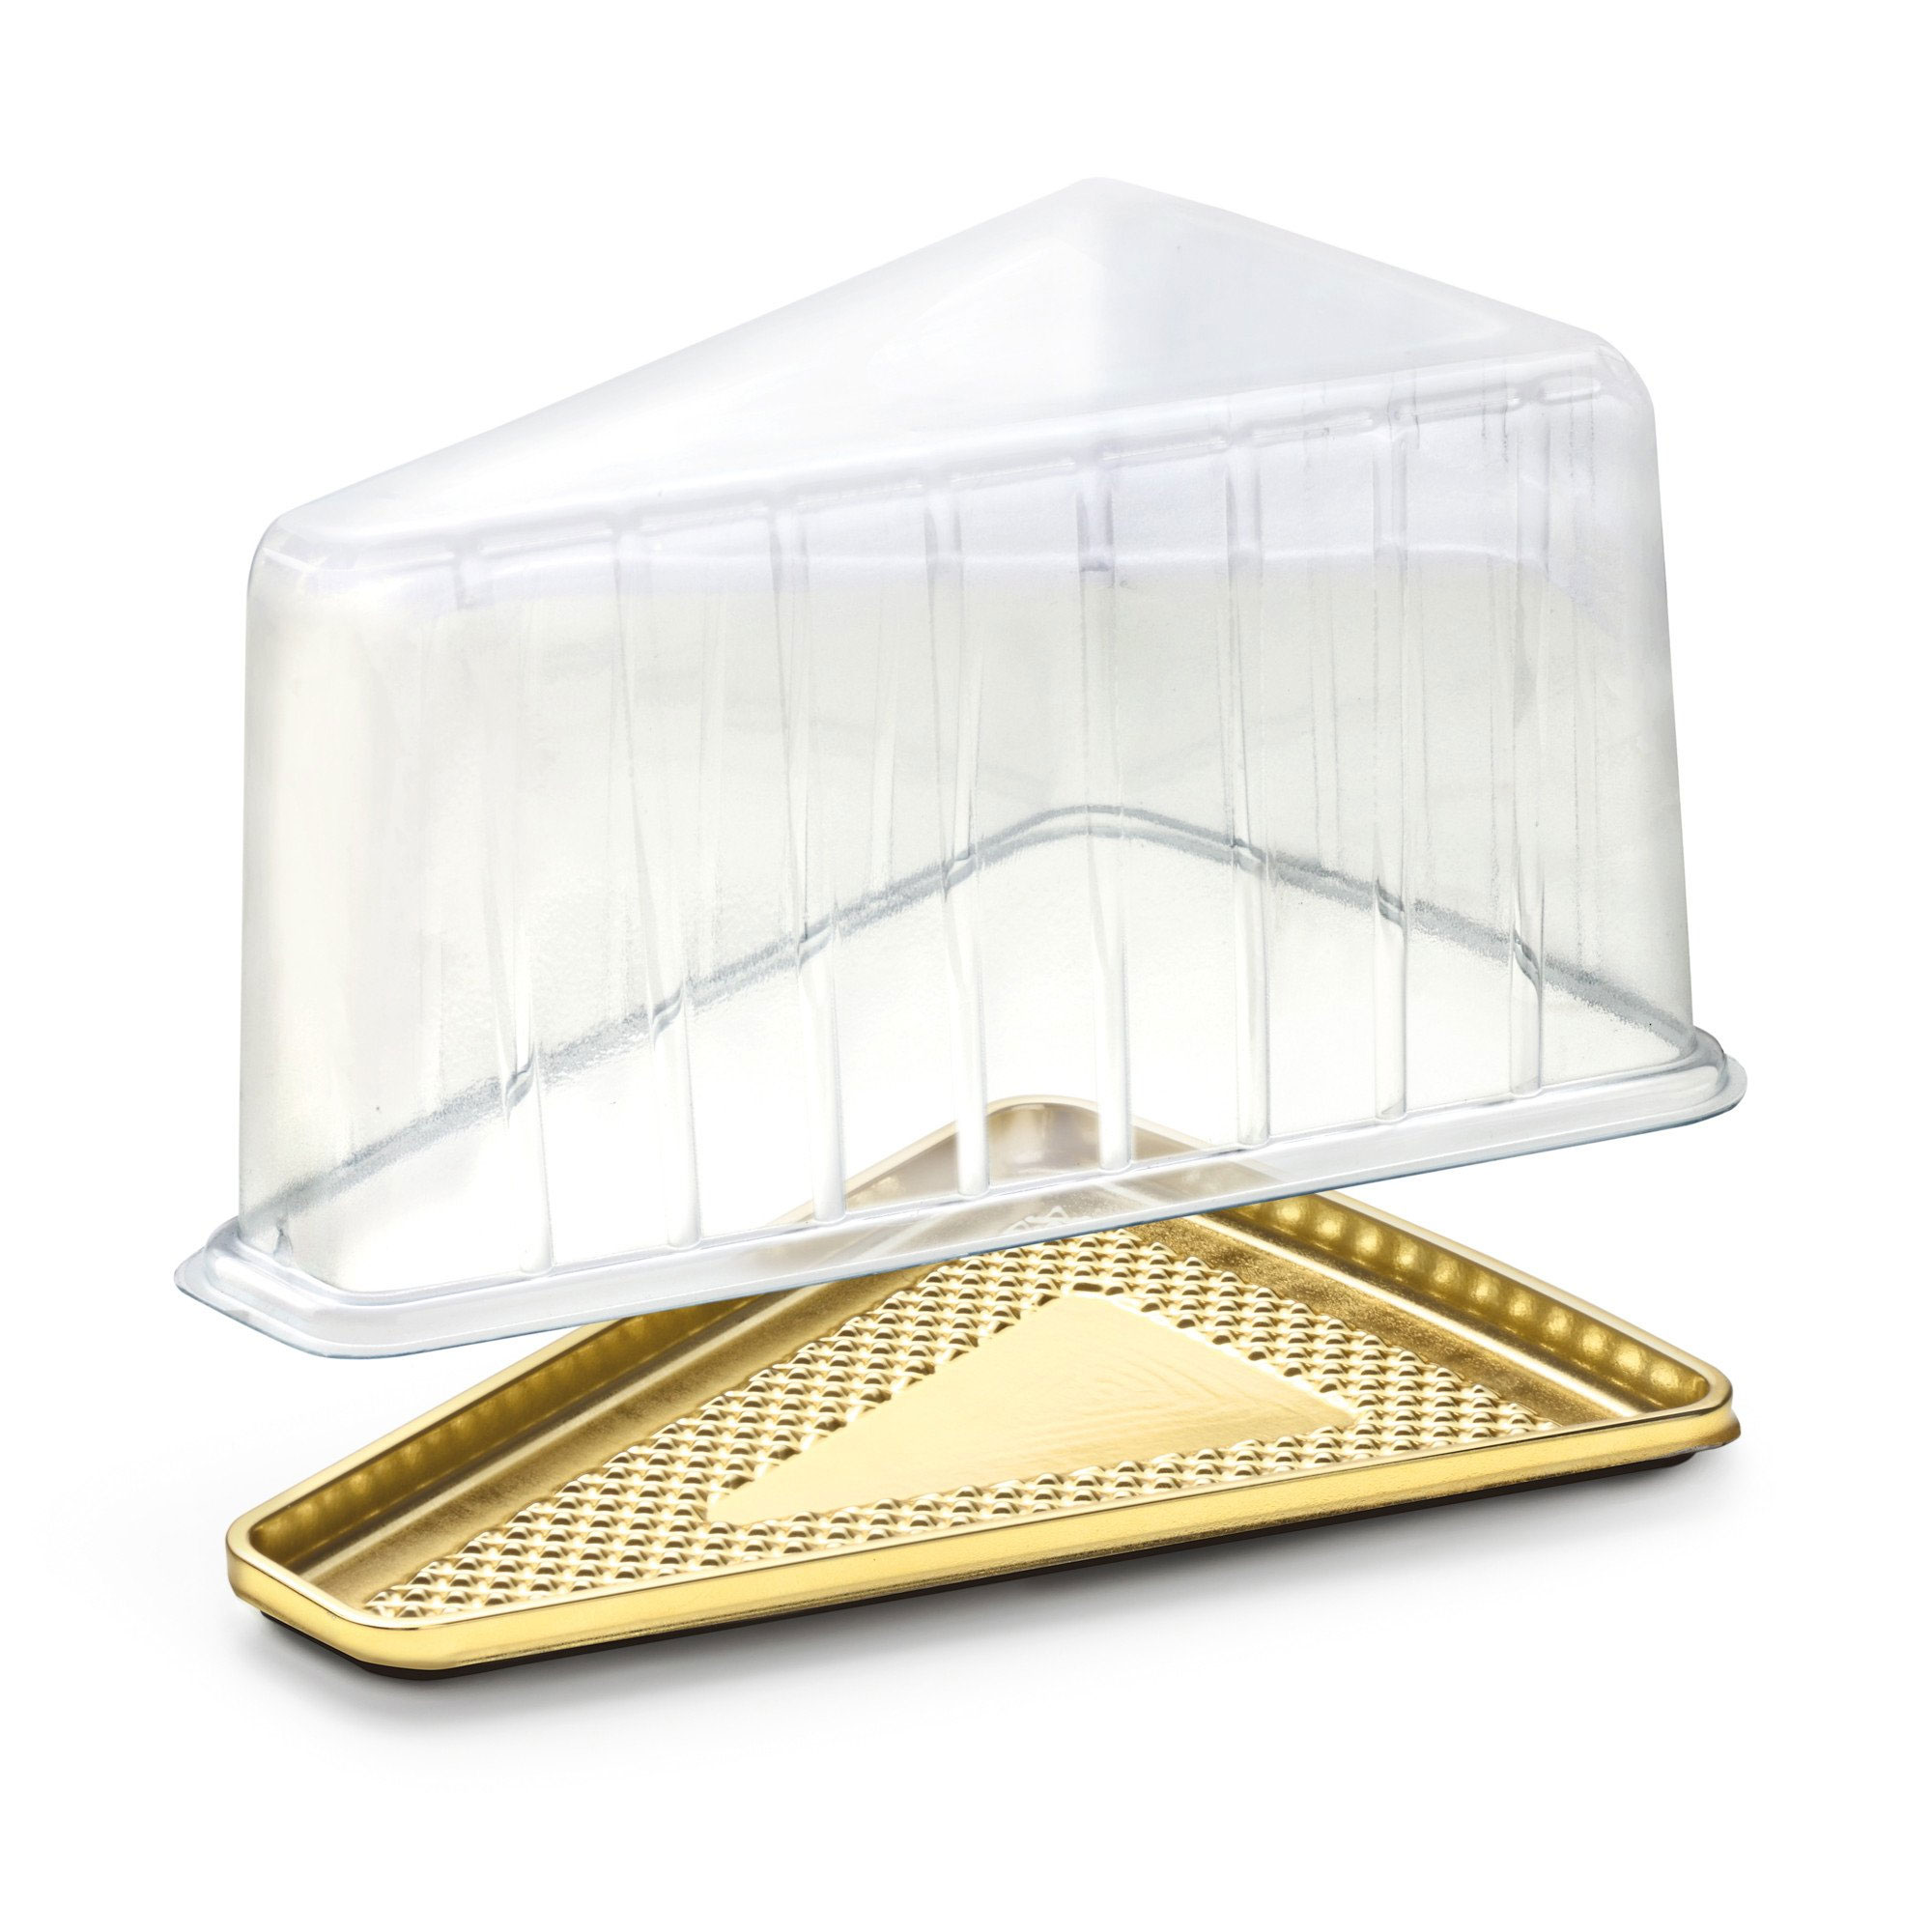 "6.3""l x 4.8""W x 4.8""H Dome Lid for Medoro Gold Cake Slice Tray,Case of 400"